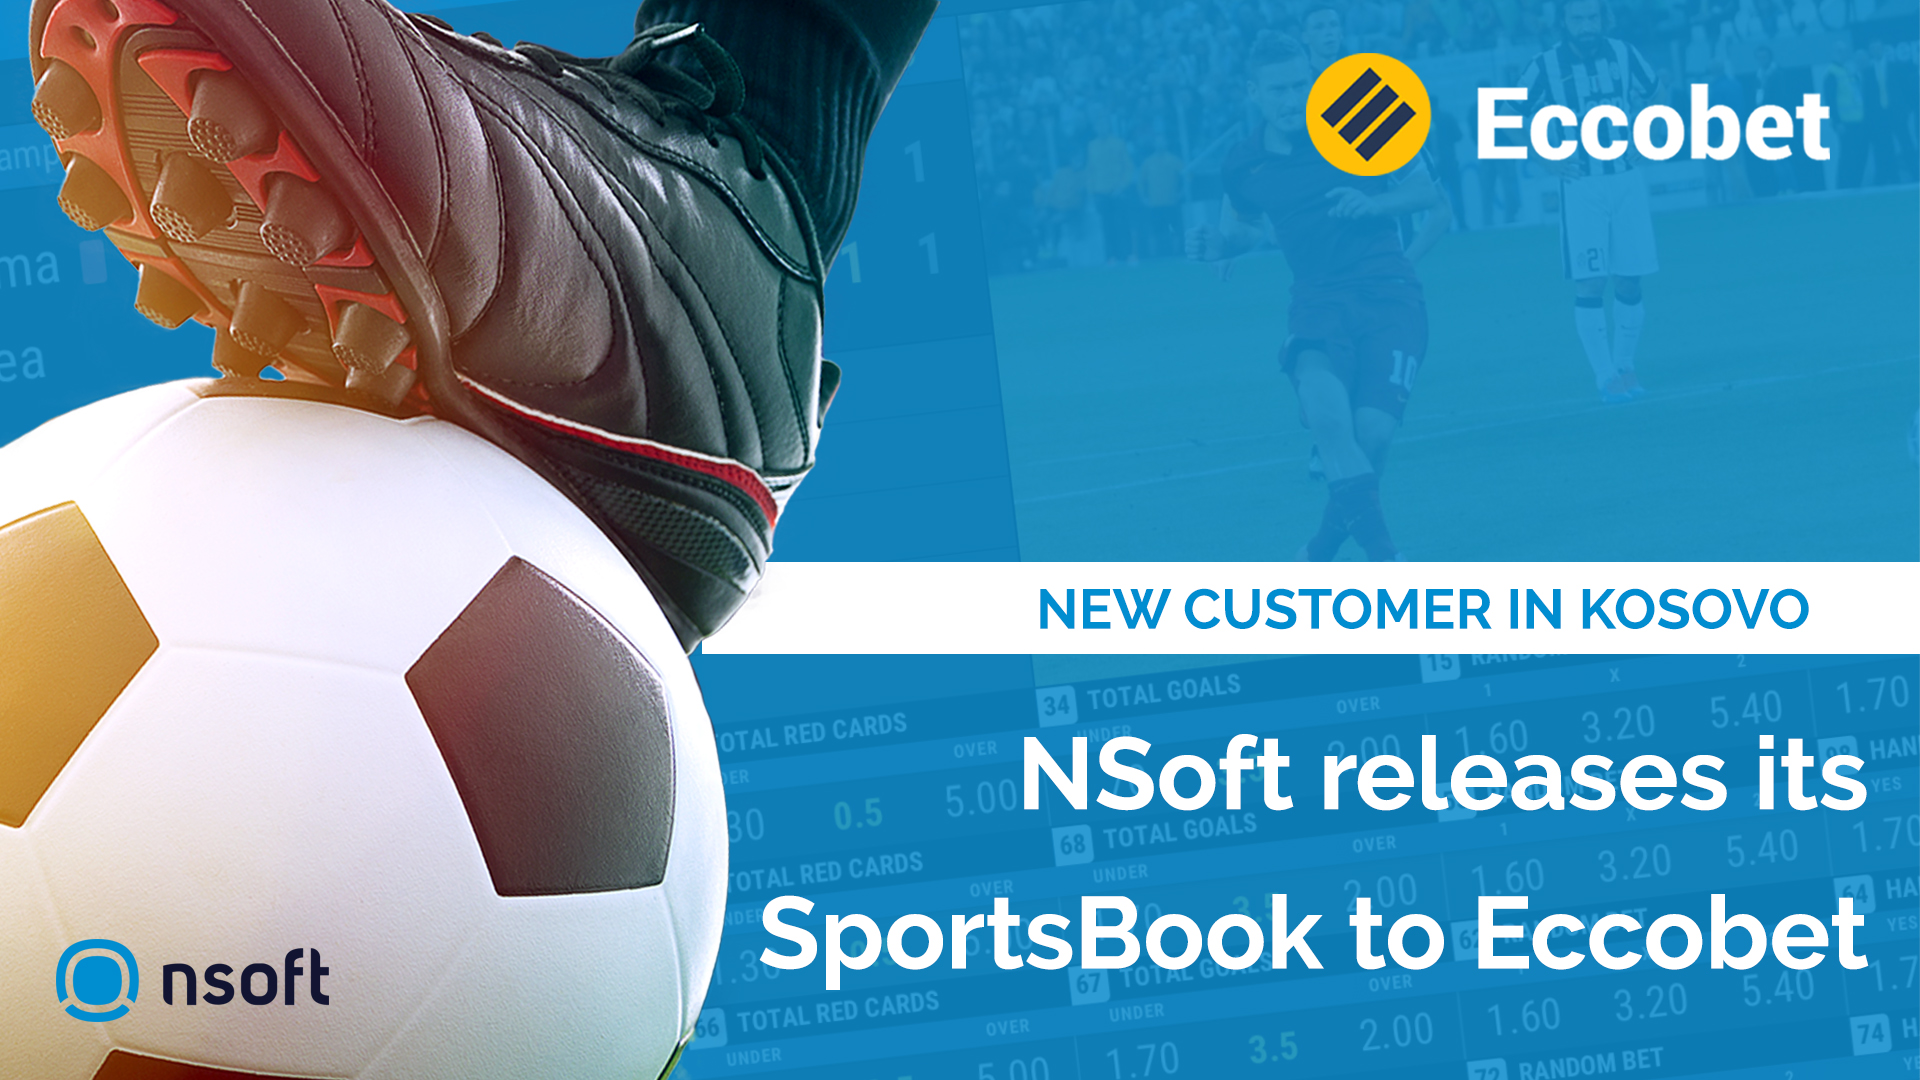 NSoft releases its SportsBook to a new customer in Kosovo